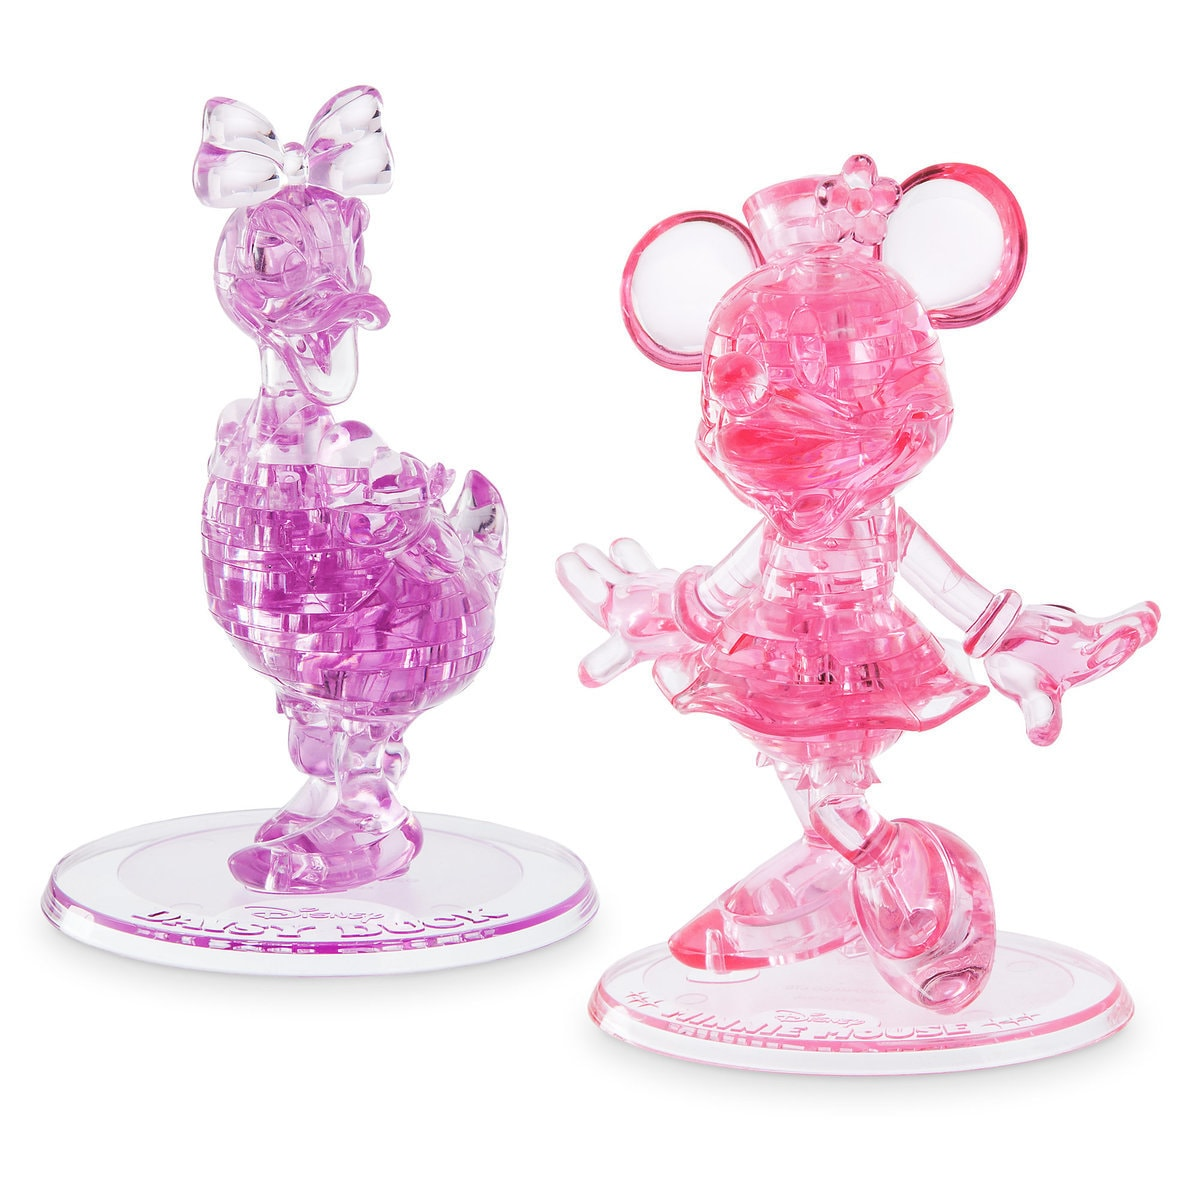 Minnie Mouse and Daisy Duck 3D Crystal Puzzle Set by BePuzzled ...